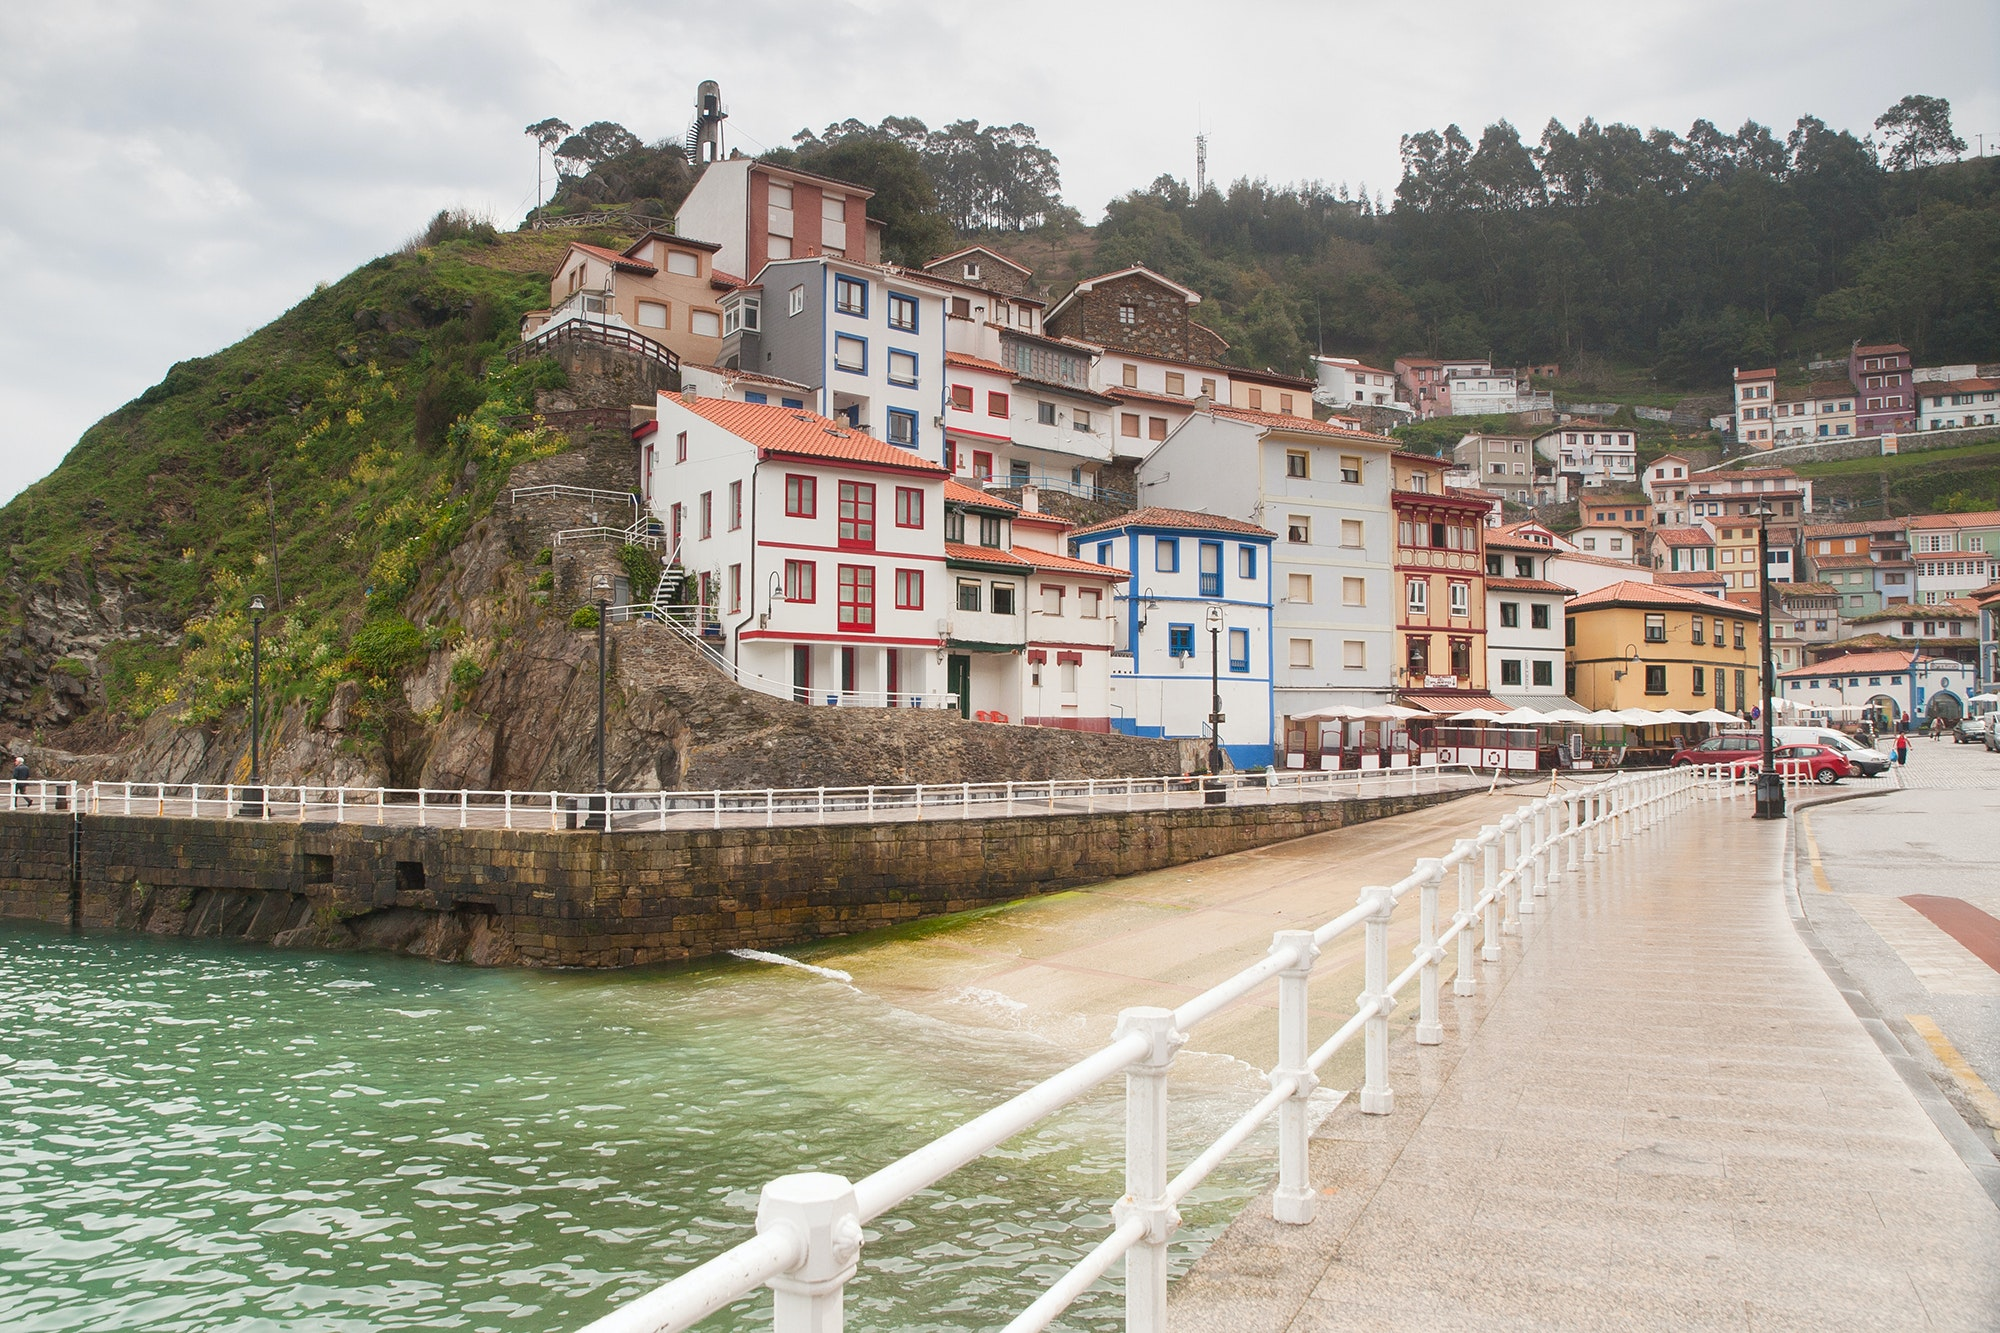 The coastal village of Cudillero came in second in the vote.